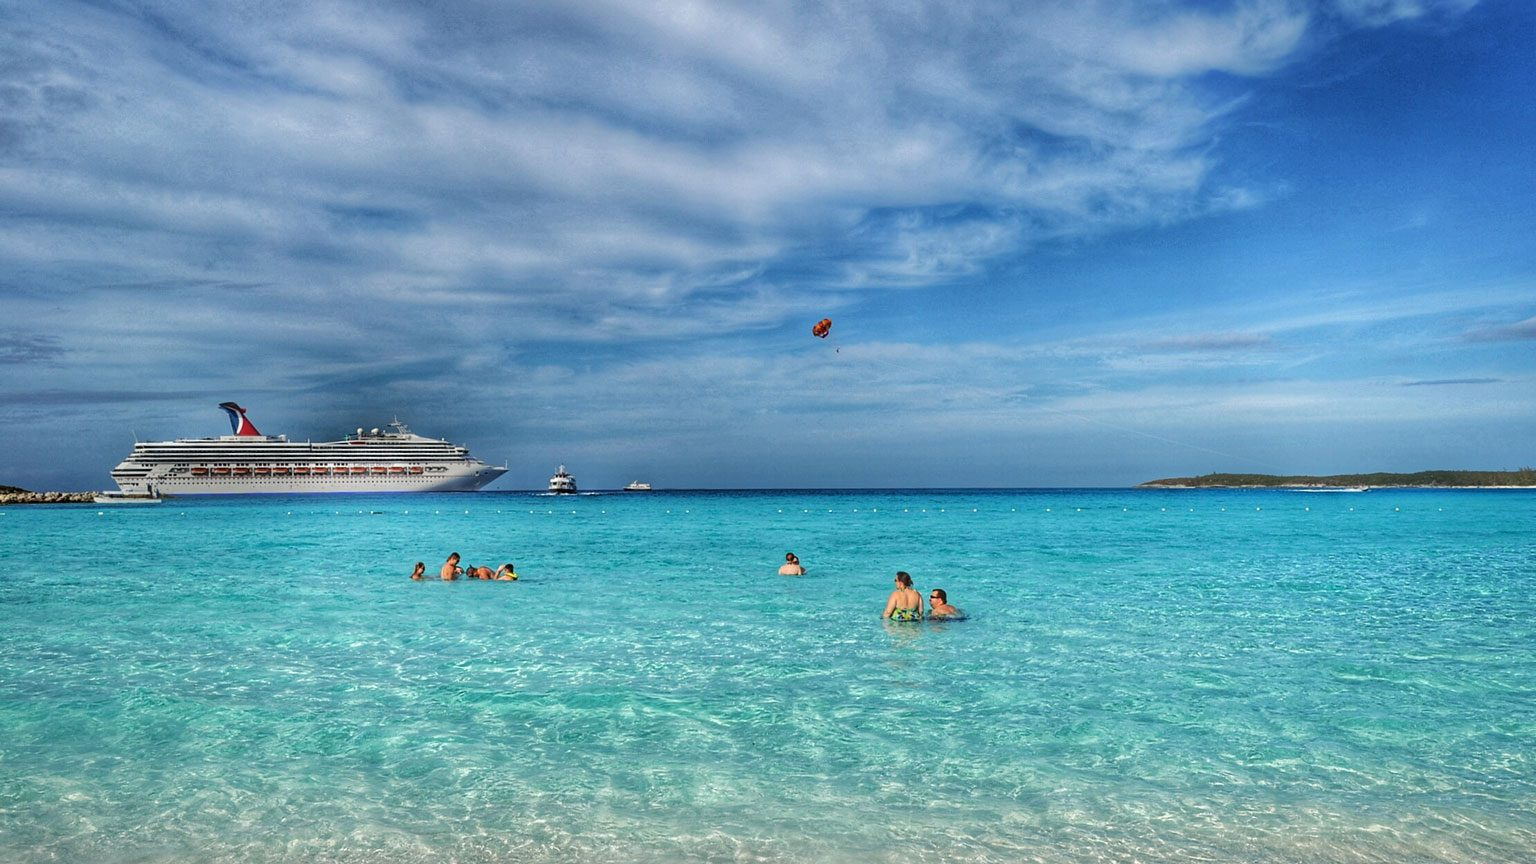 People In Sea By Cruise Ship